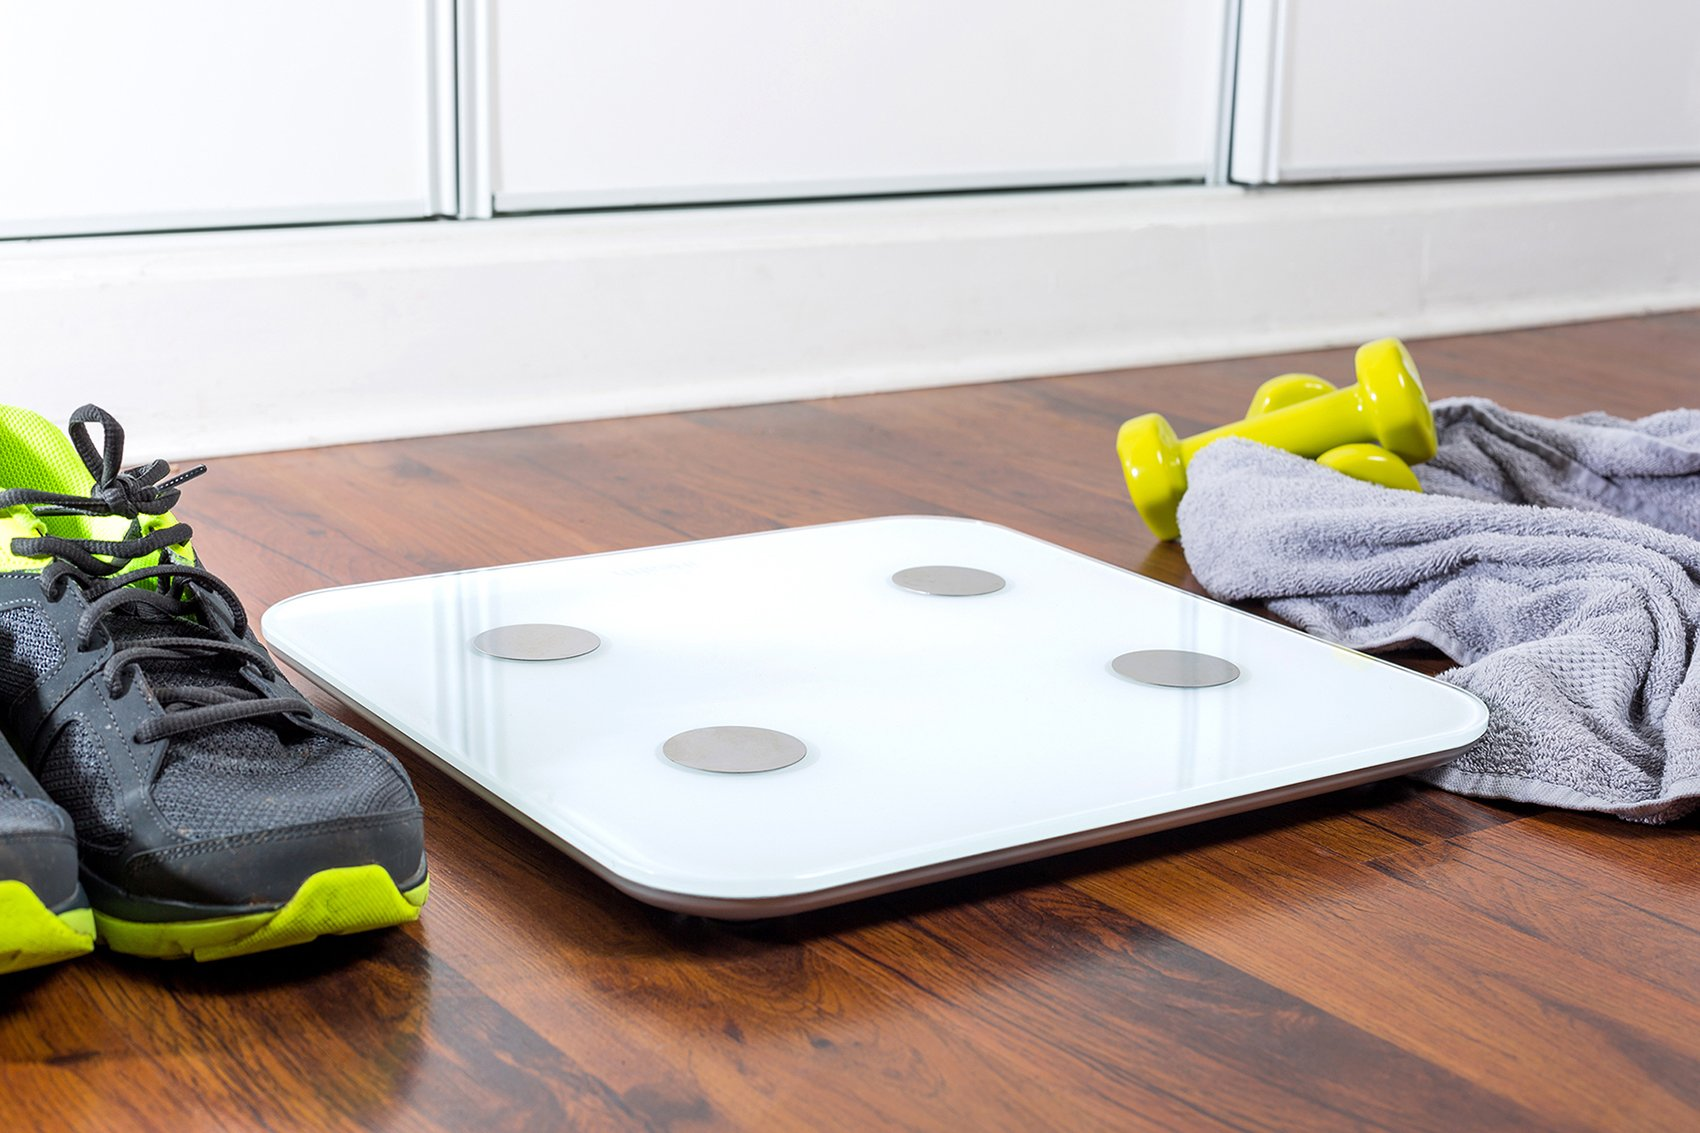 iHealth Core Wireless Body Composition Scale for Apple and Android - Measures Body Fat, BMI, Muscle Mass, and More for 10 Users by iHealth (Image #4)